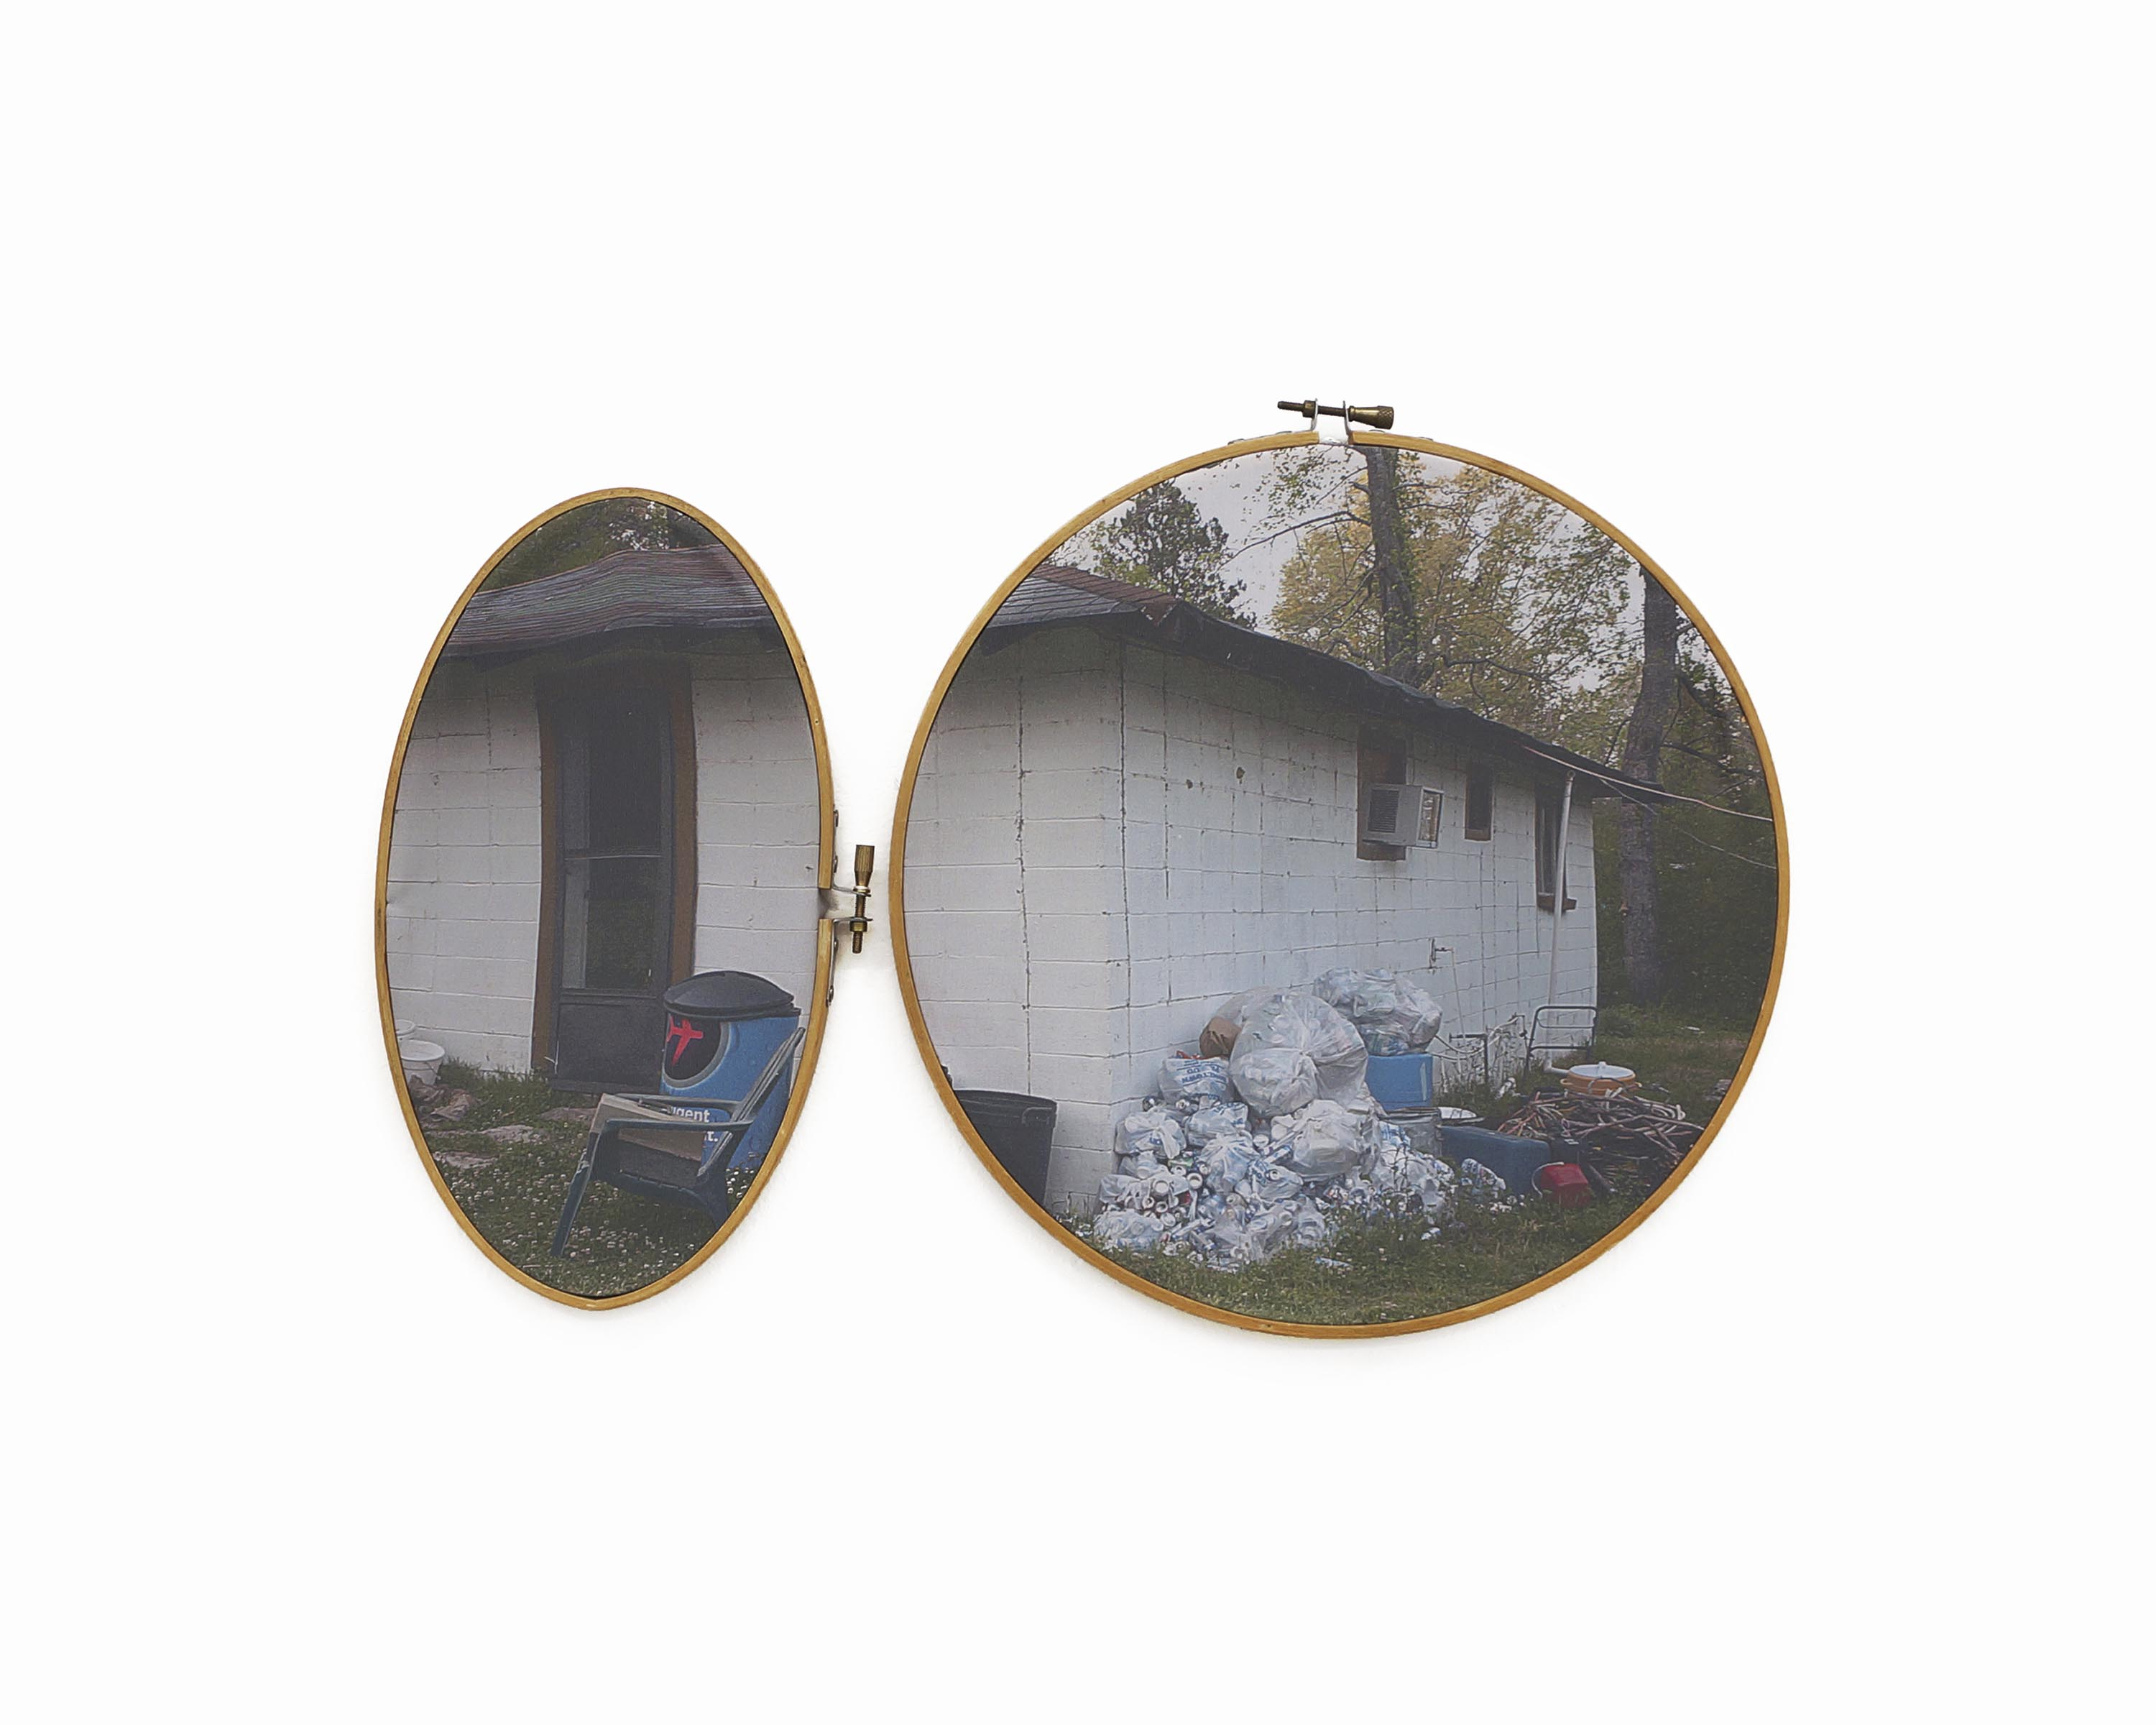 "Bud's House 2017 pigment print on fabric with vintage embroidery hoop 10 ¾"" h x 16 ½"" w"